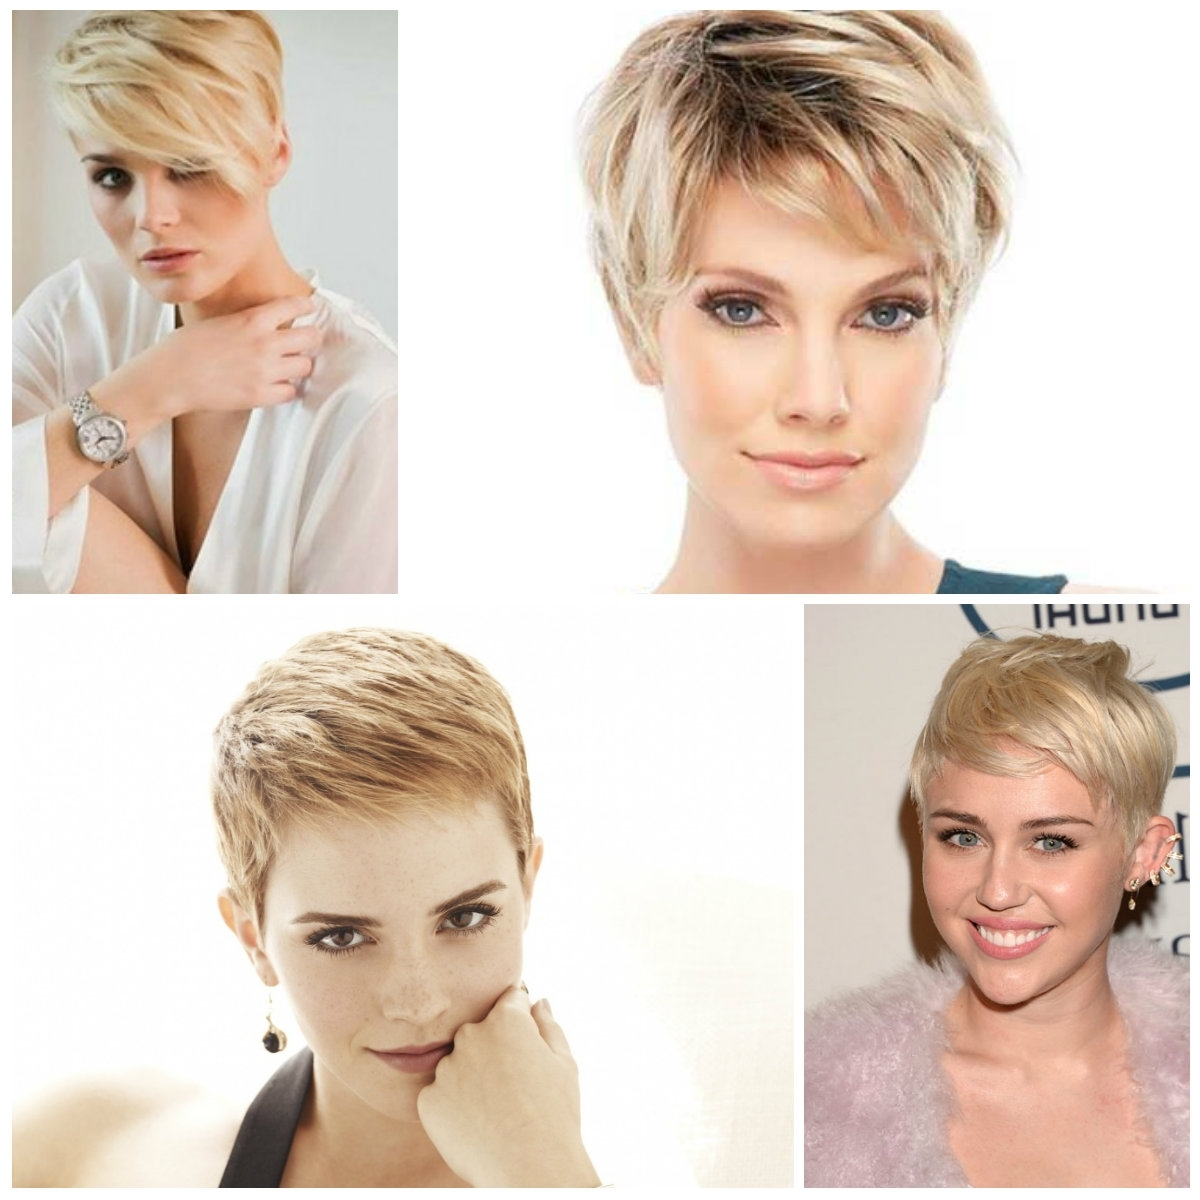 Subtle Blonde Pixie Hairstyles – Haircuts And Hairstyles For 2017 Throughout 2018 Pixie Hairstyles With Highlights (View 10 of 15)